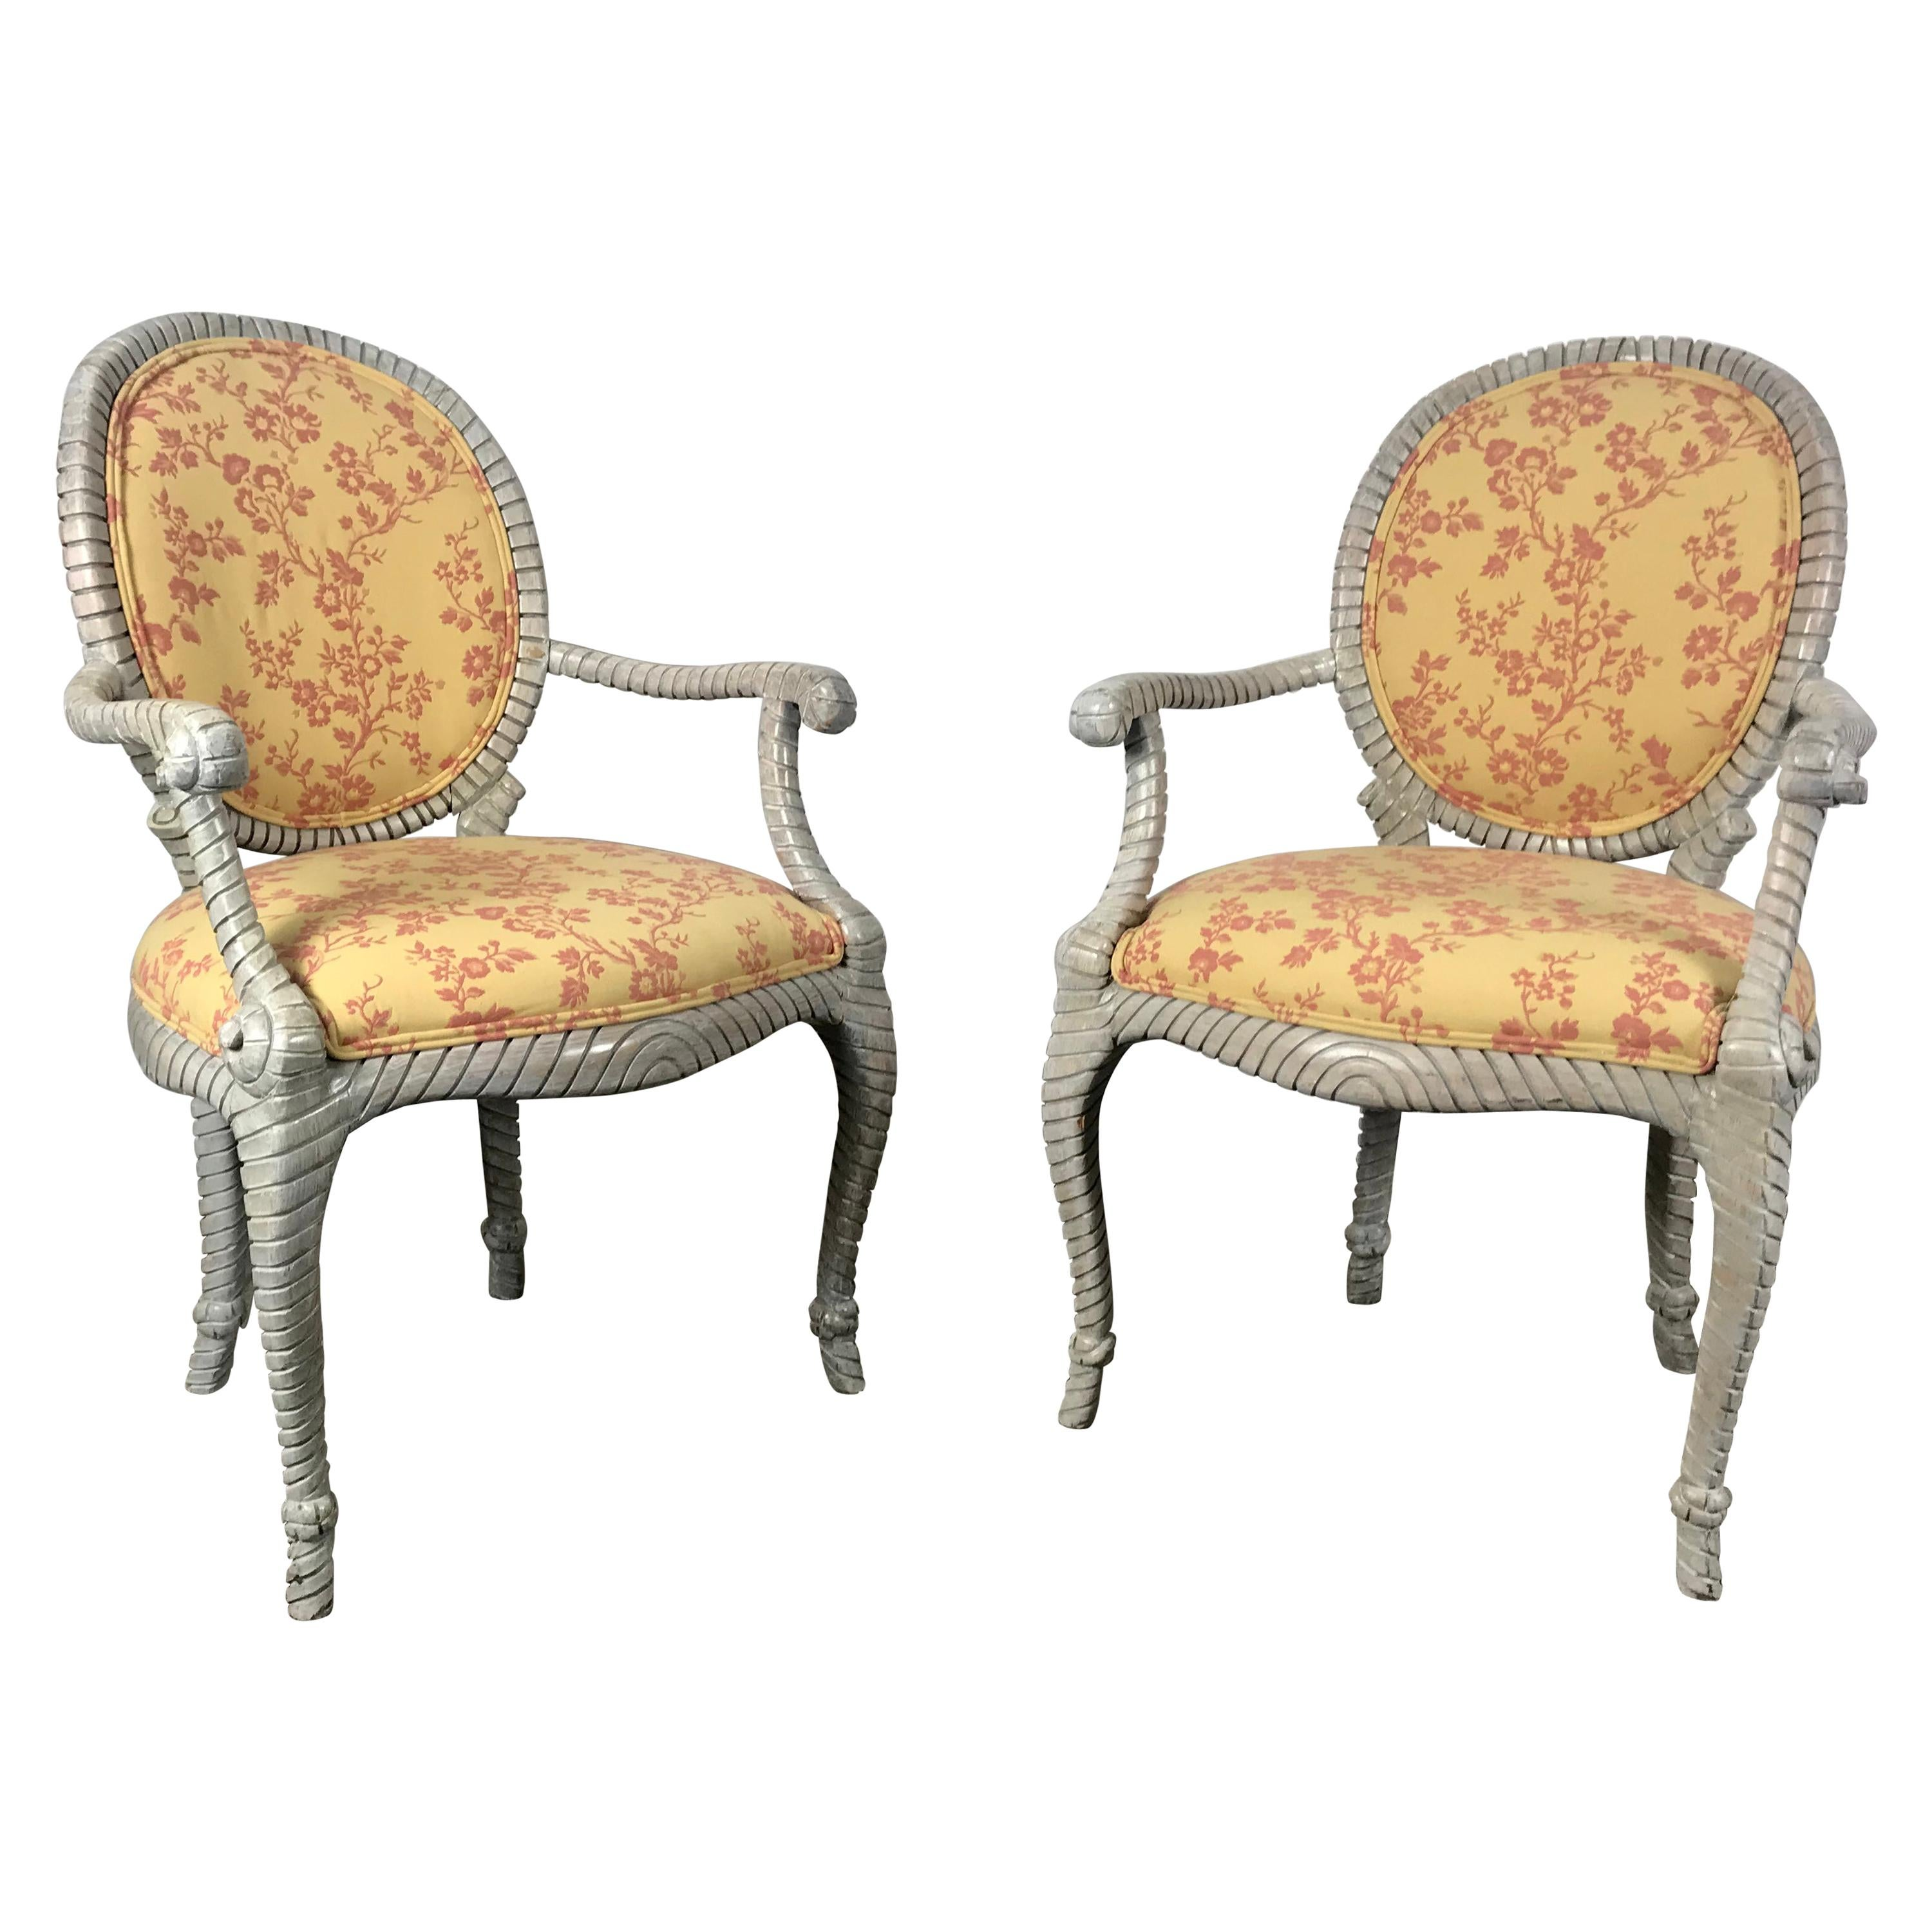 Stunning Pair of Rope and Tassel Louis XVI Style Armchairs, Faux Bois